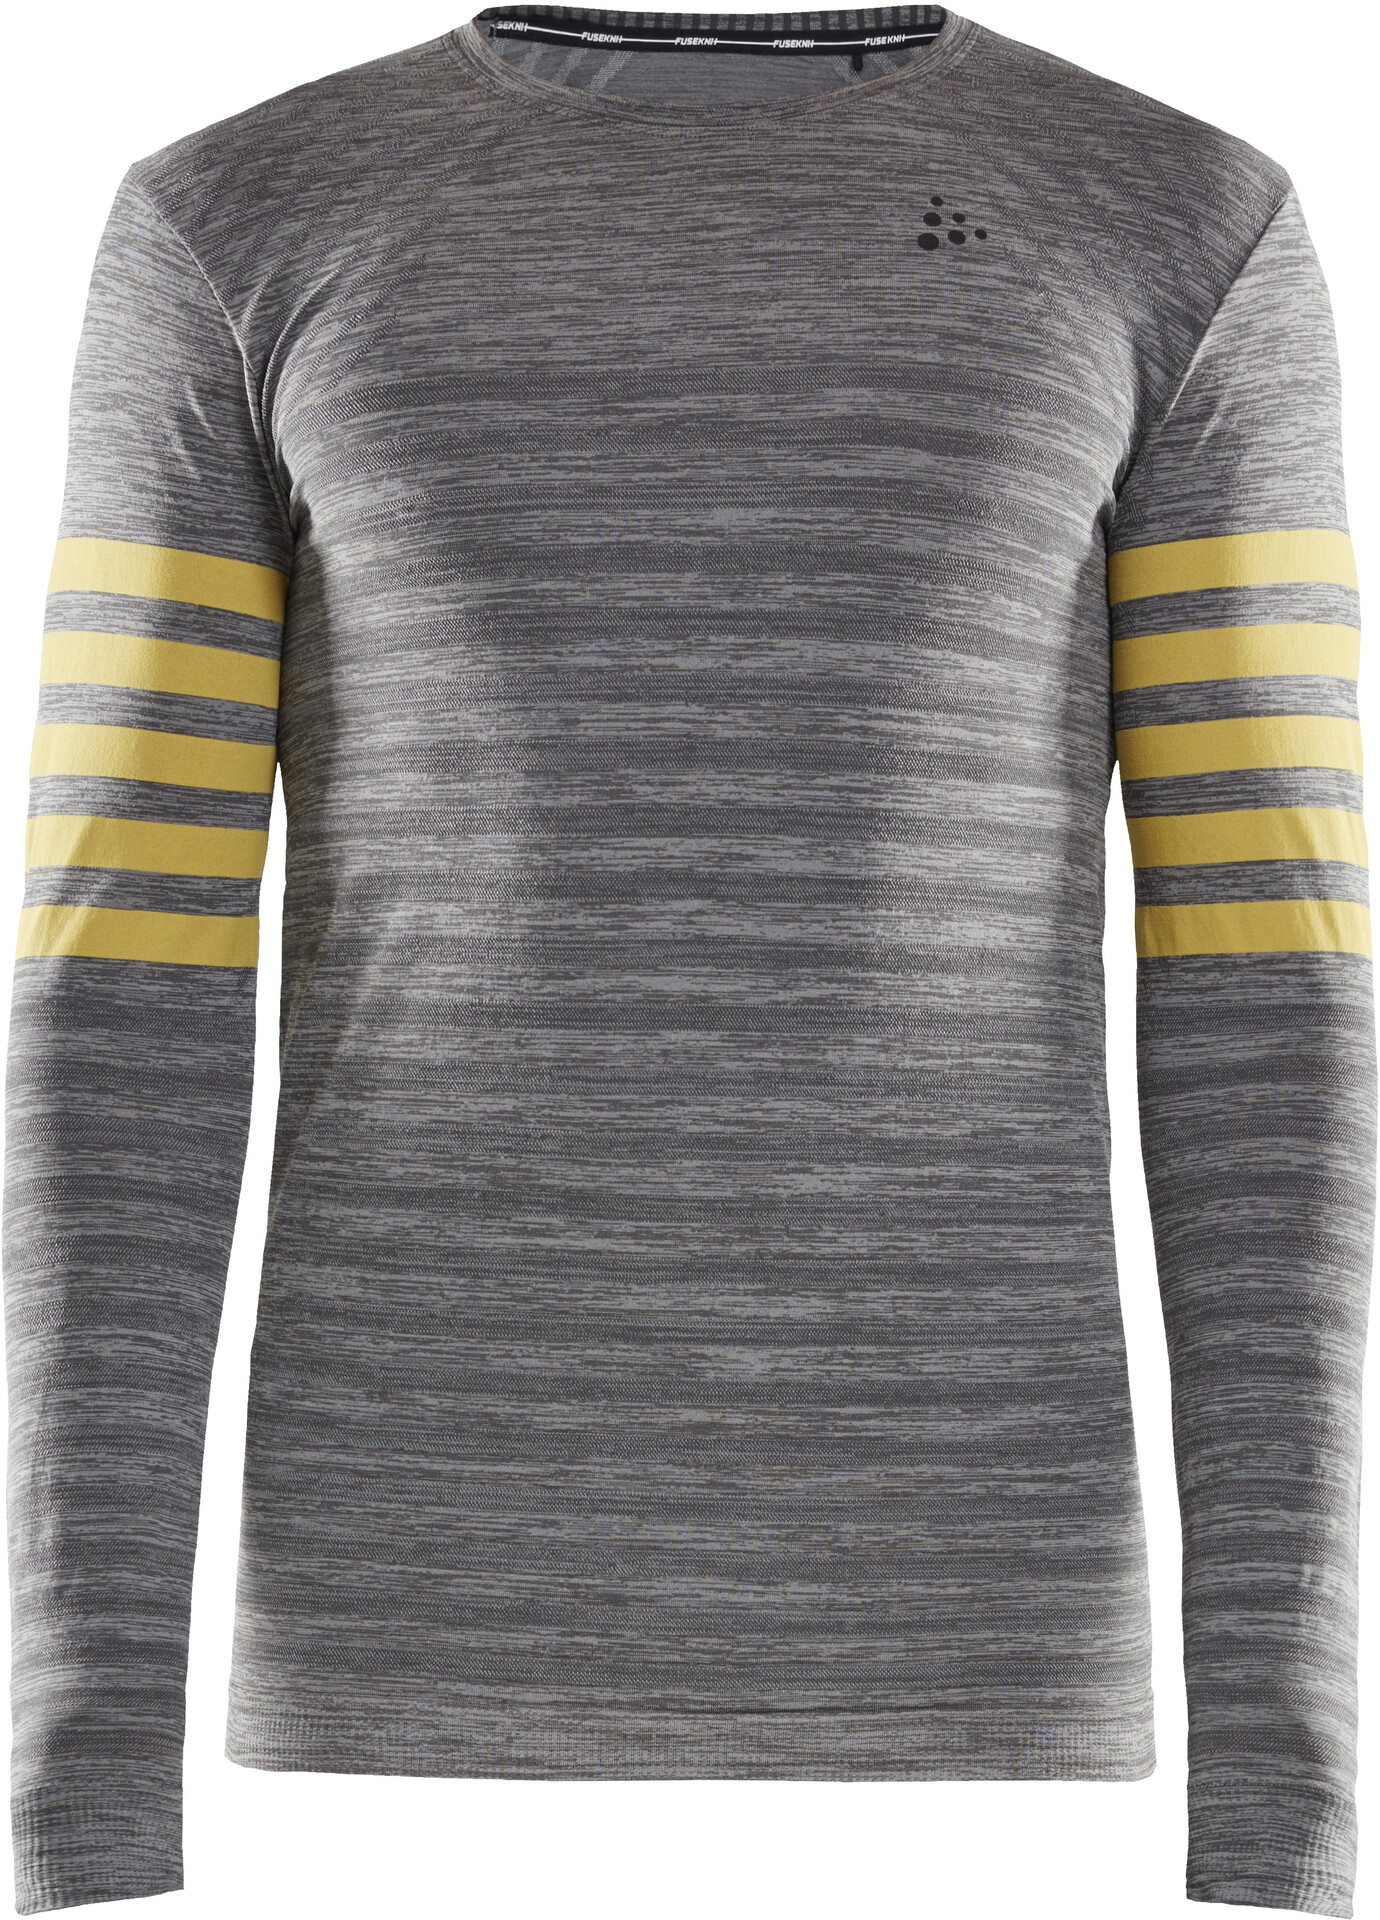 Maillot de Running Longues Homme Homme Craft Fuseknit Comfort Col Rond M